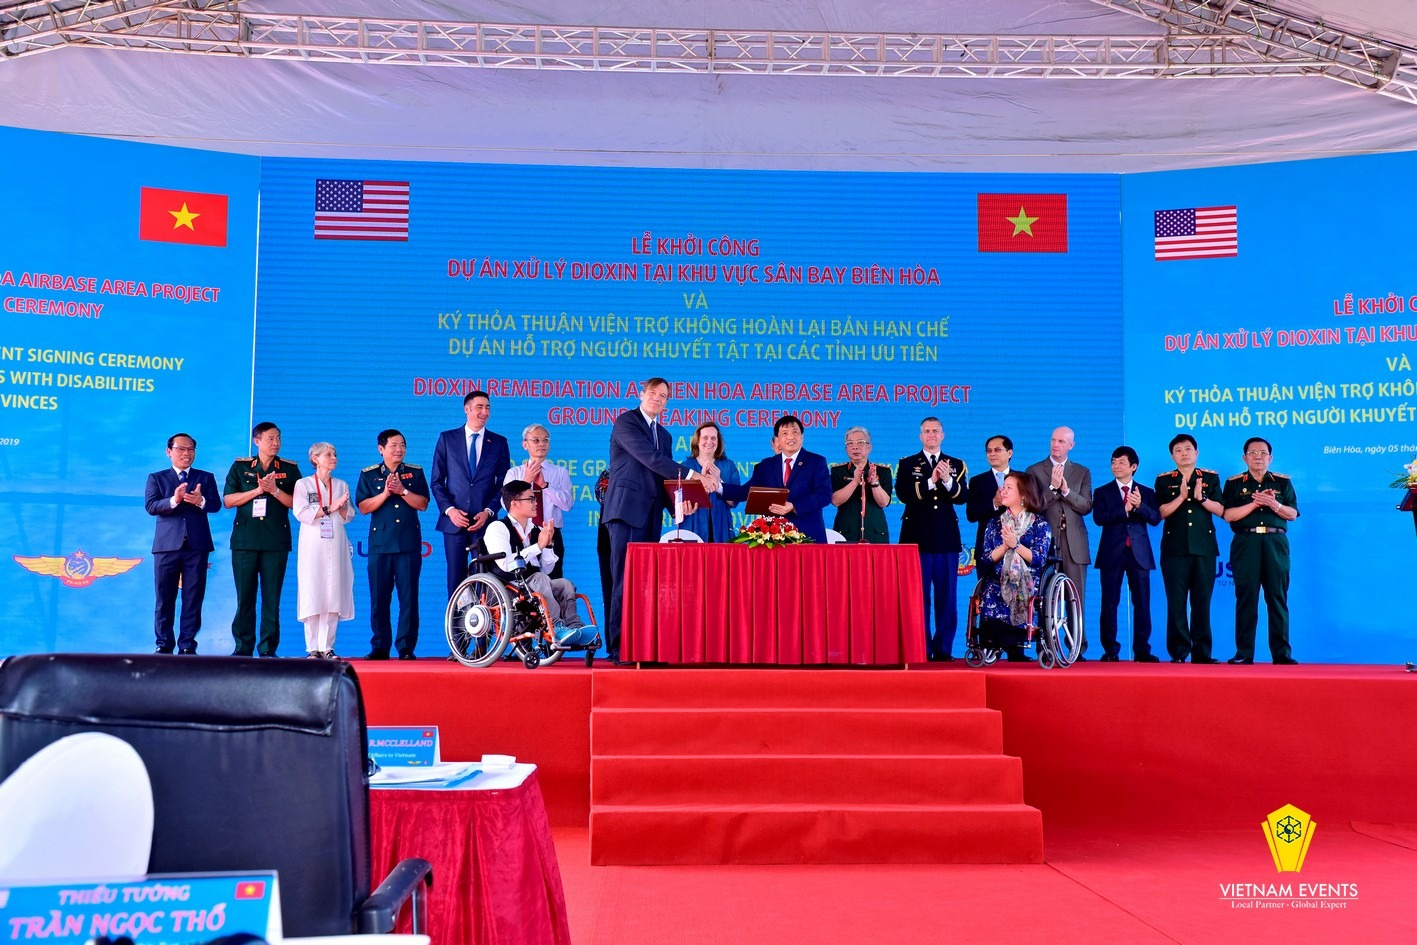 Ground - breaking and signing ceremony on dioxin remediation operations  at Bien Hoa Airbase